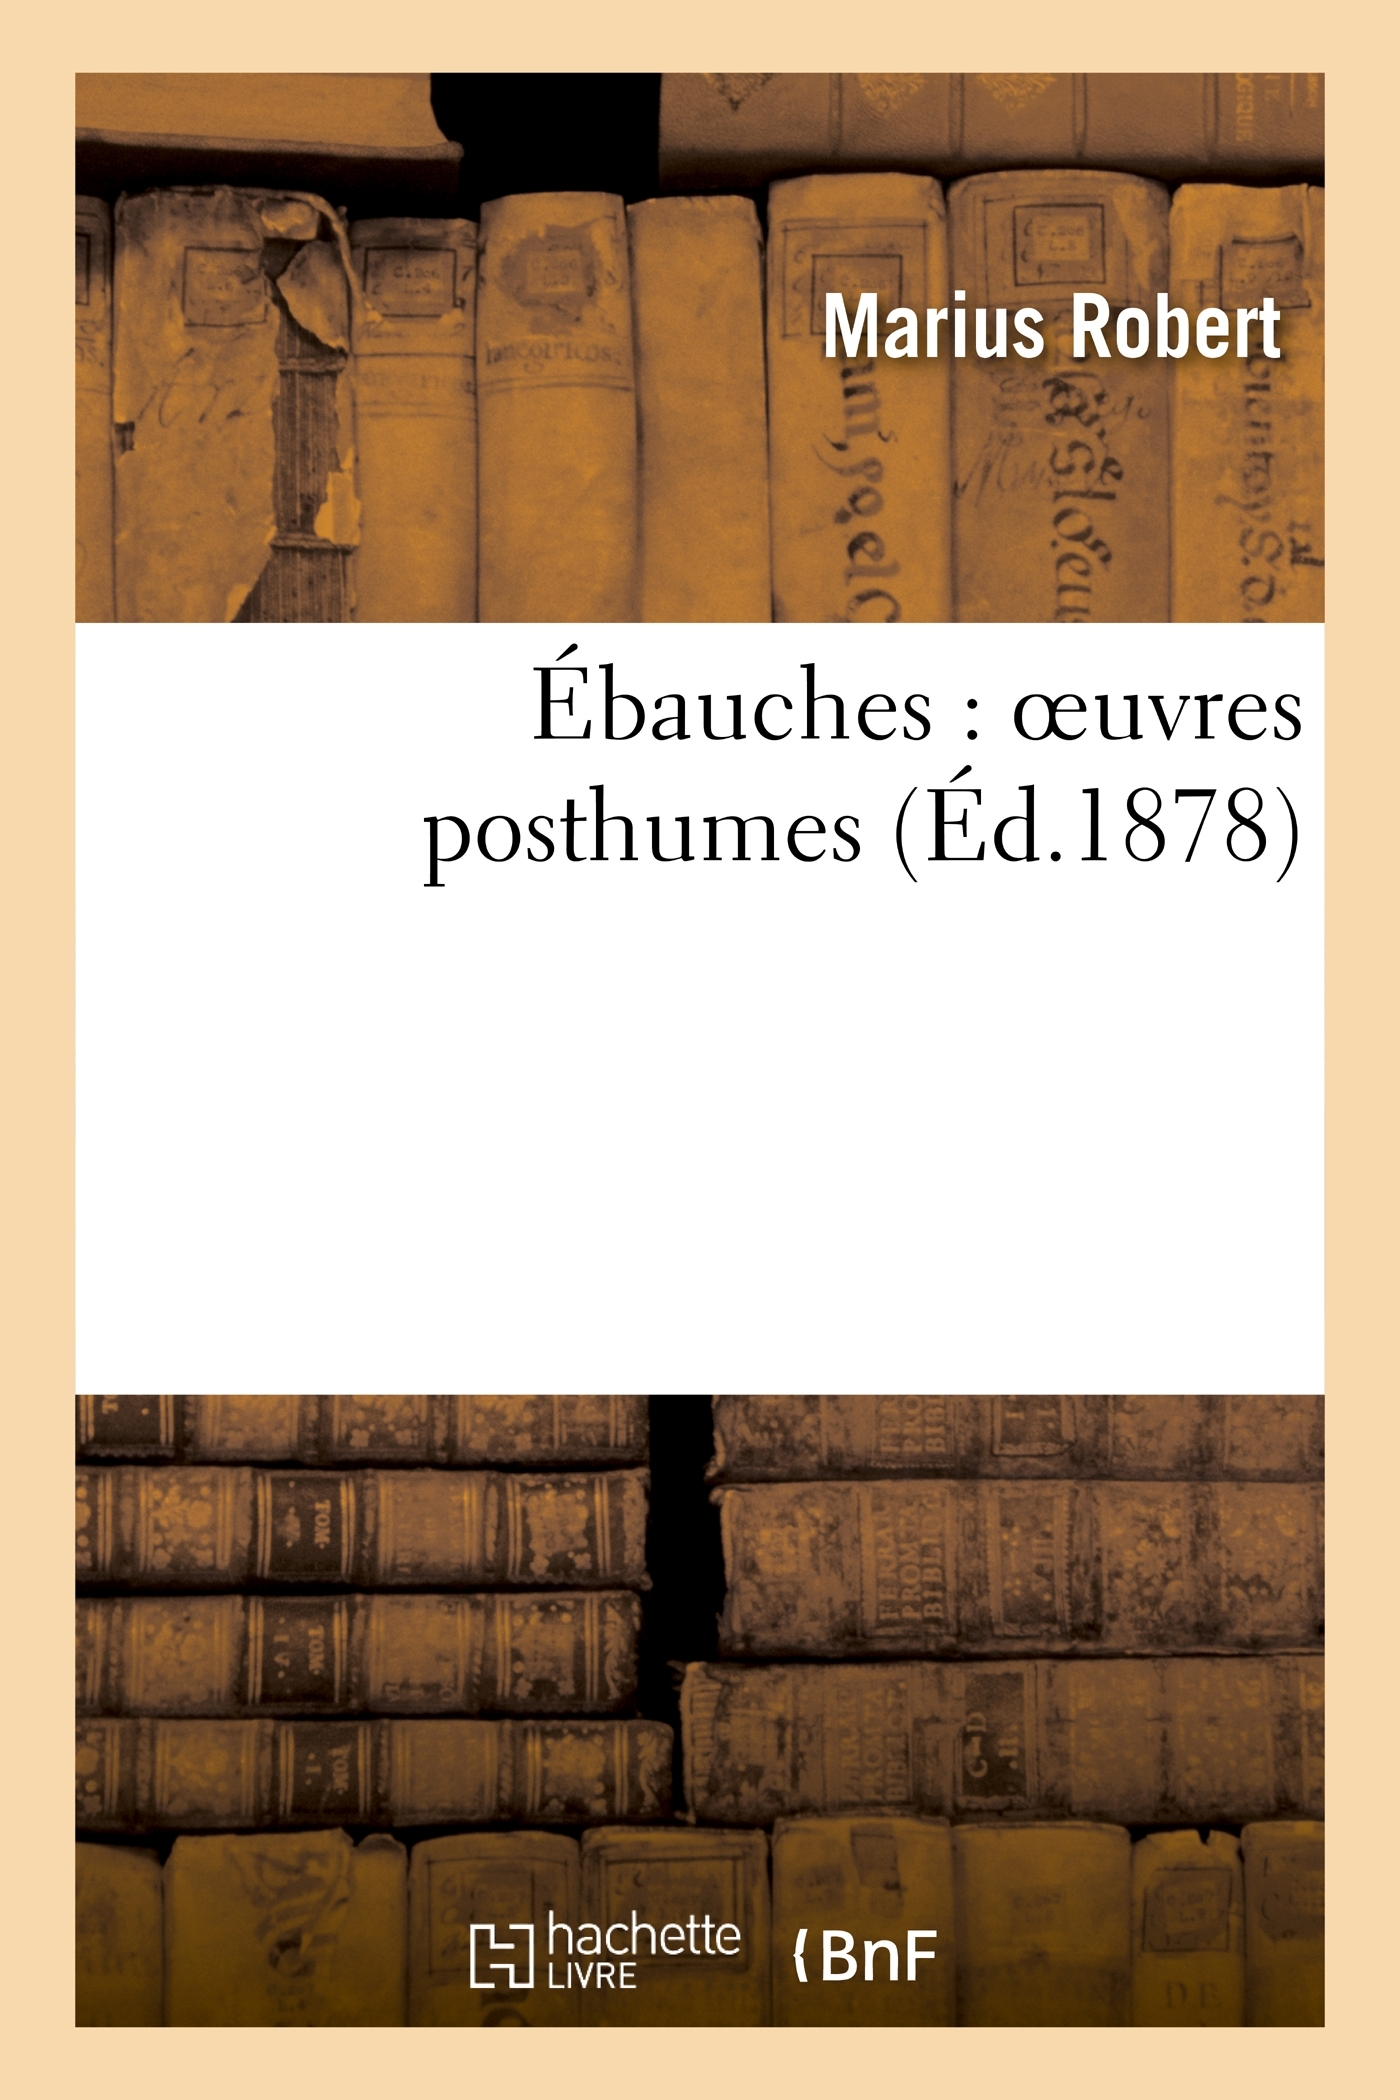 EBAUCHES : OEUVRES POSTHUMES